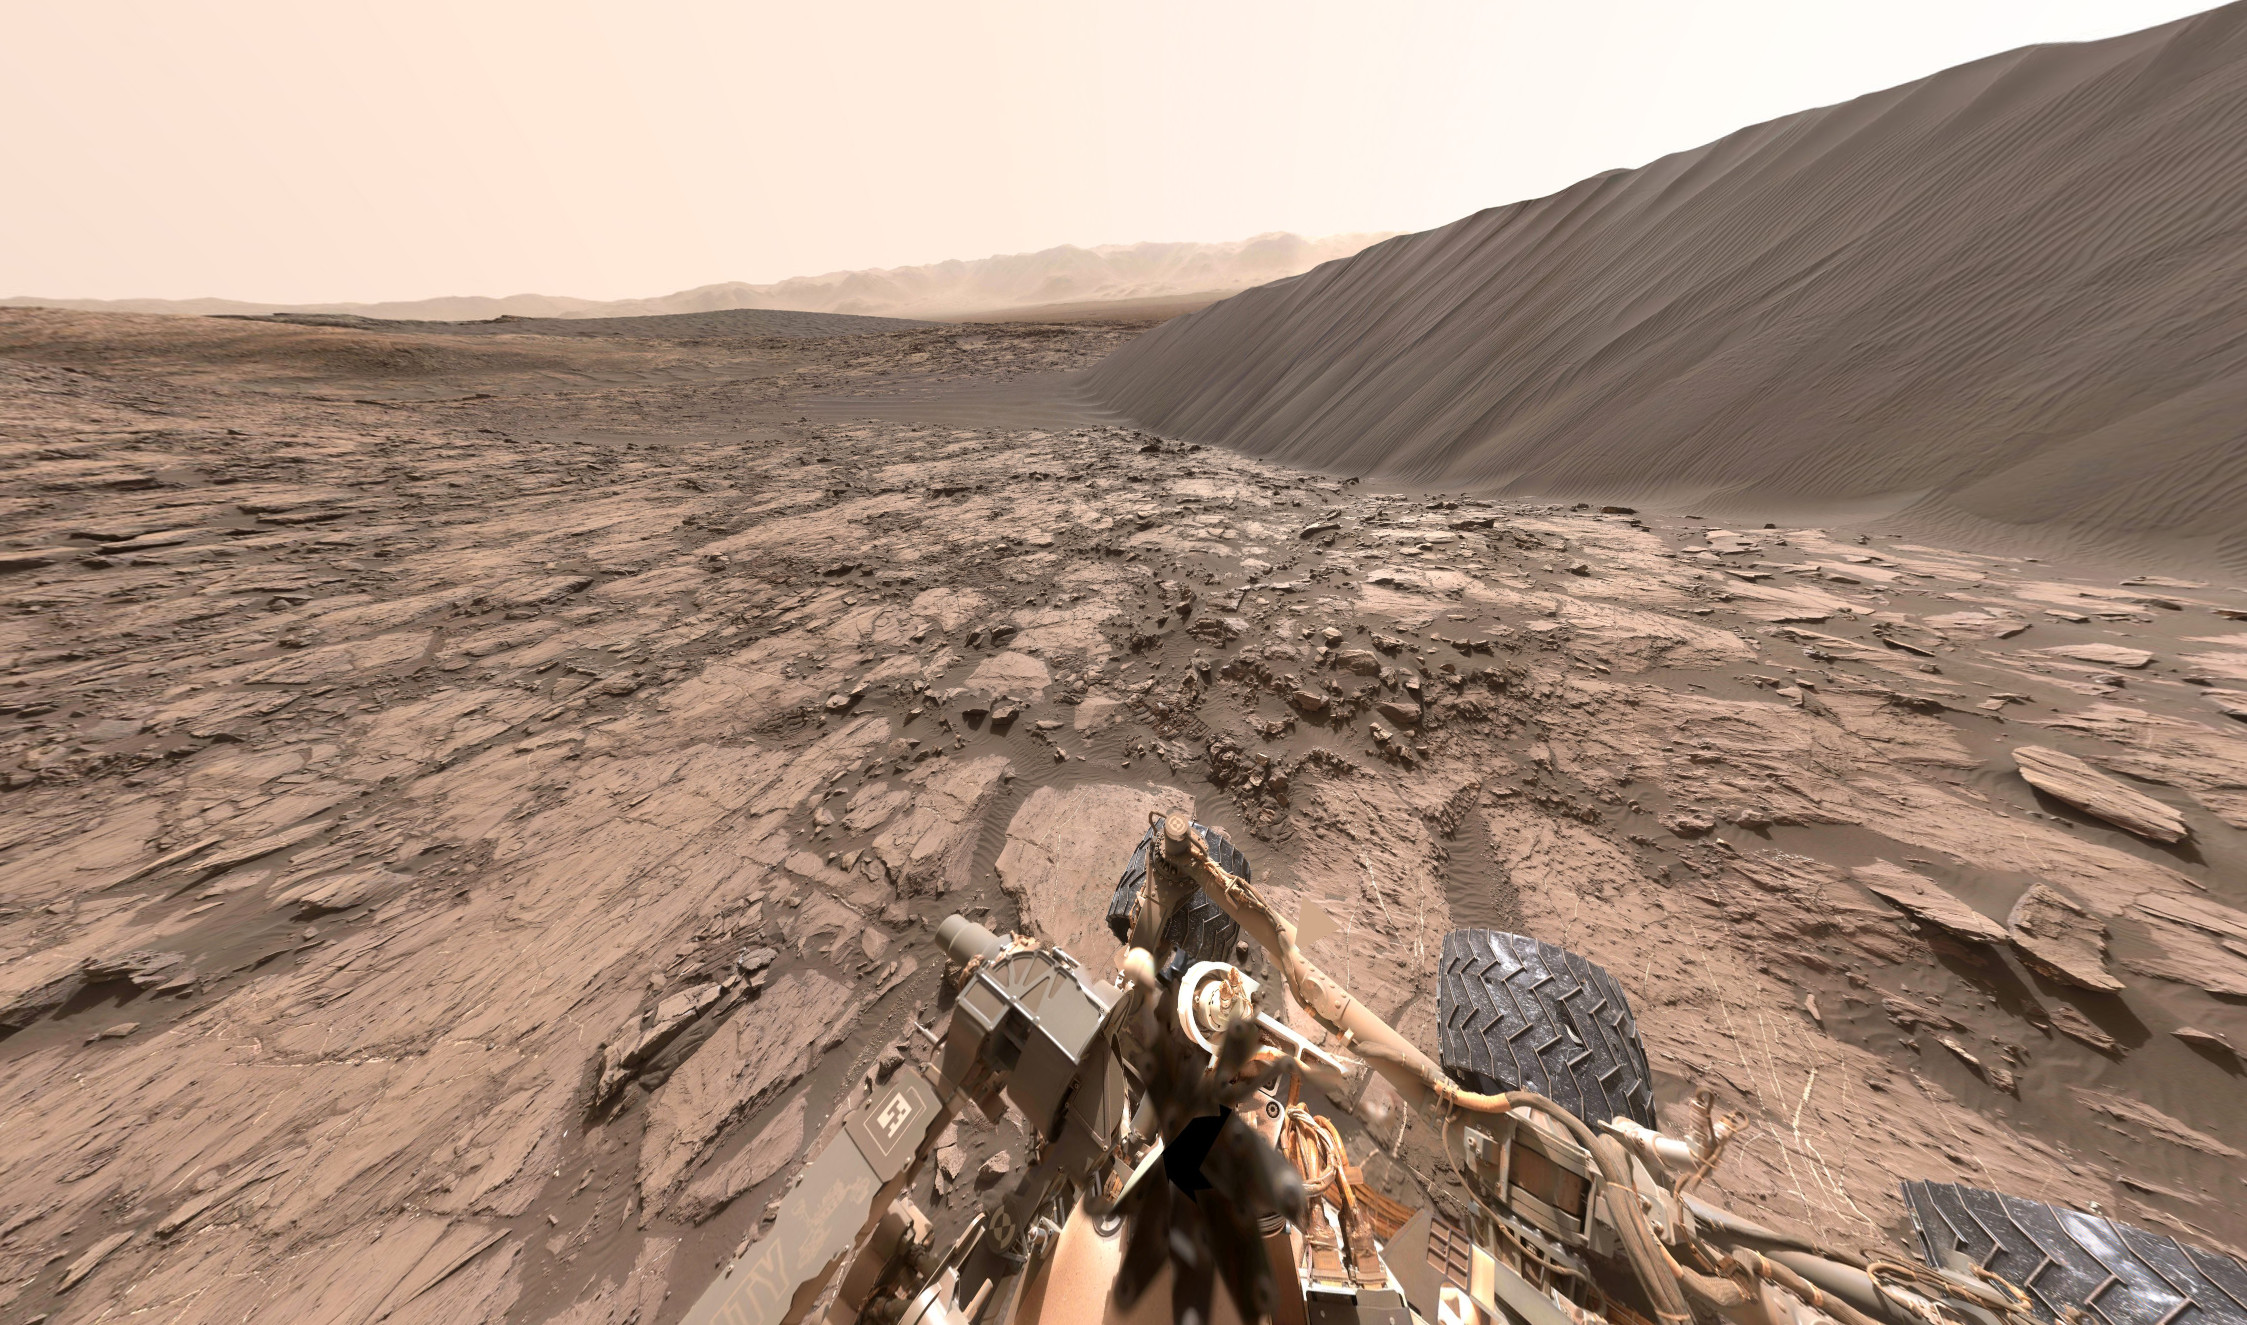 Res: 2247x1325, Explore Mars with 360-degree image shot by NASA Curiosity Rover: Digital  Photography Review